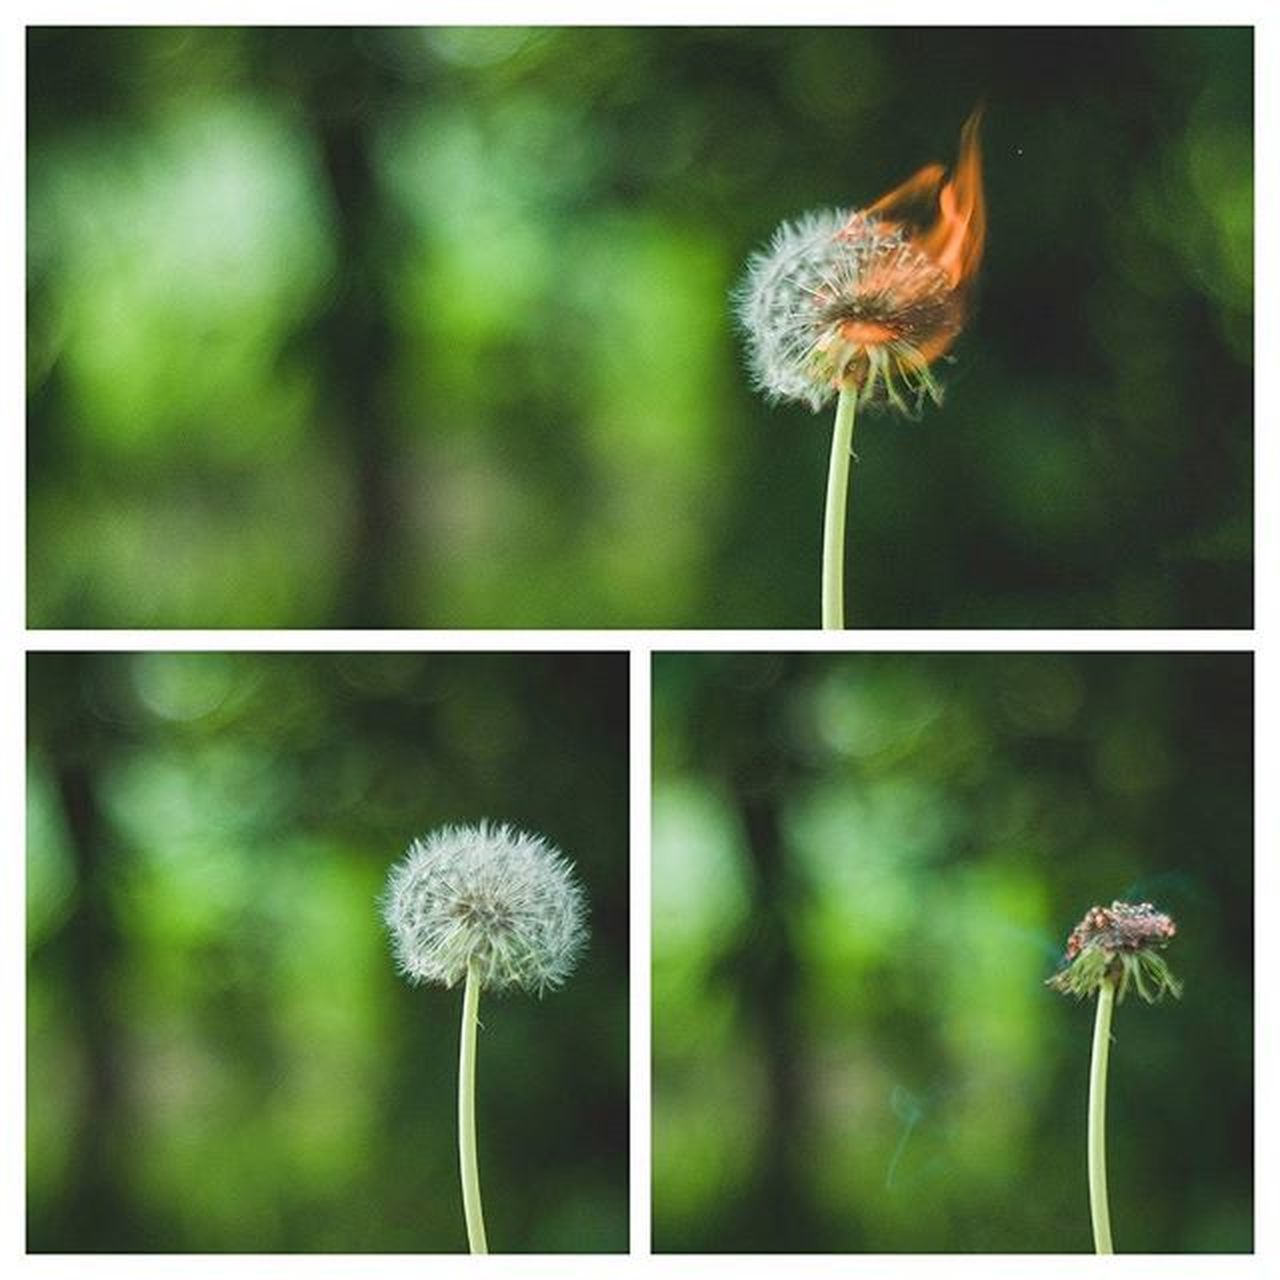 flower, dandelion, fragility, freshness, flower head, growth, focus on foreground, stem, beauty in nature, close-up, nature, wildflower, transfer print, plant, auto post production filter, petal, blooming, softness, single flower, day